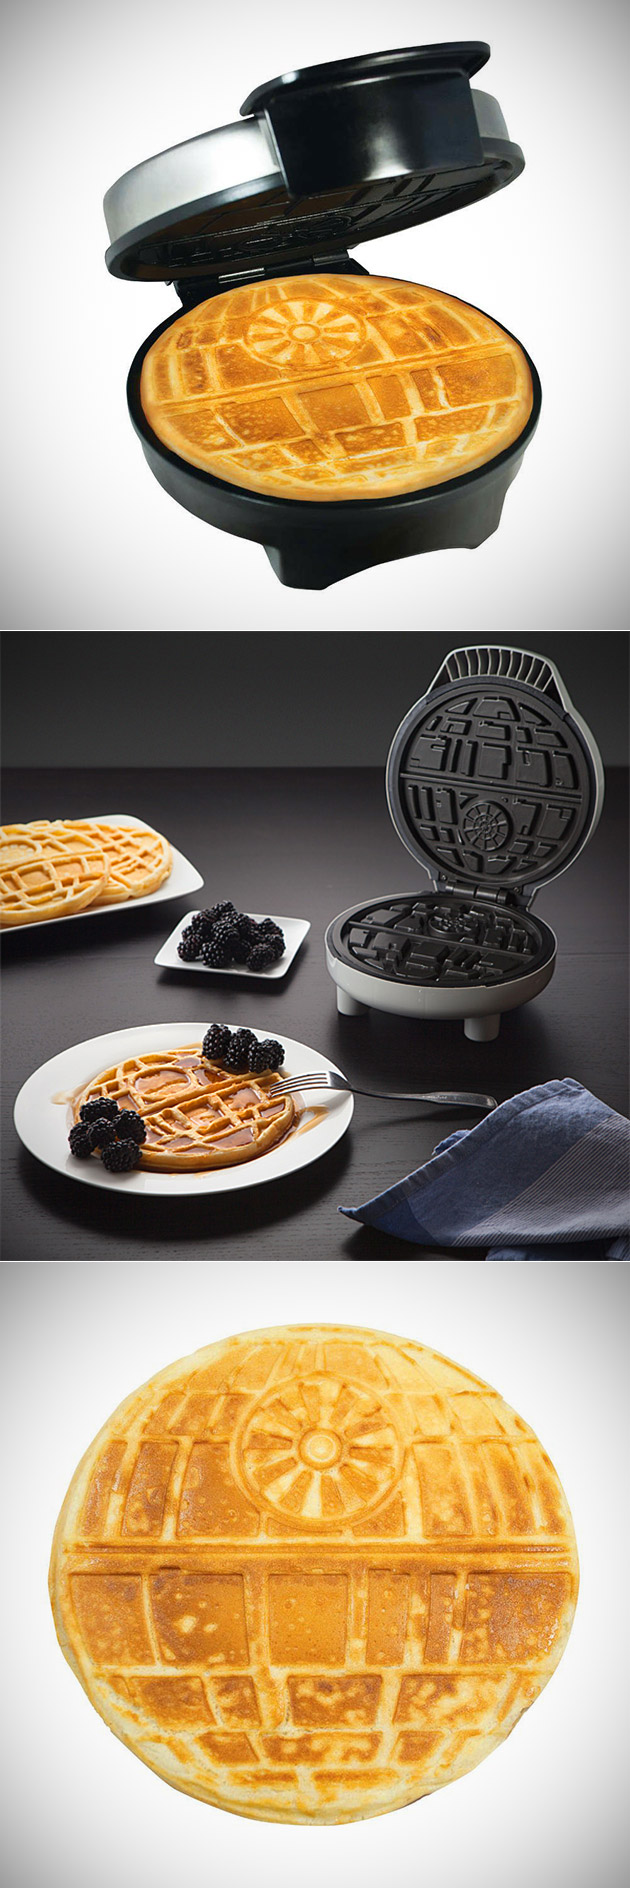 Large Of Star Wars Waffle Maker